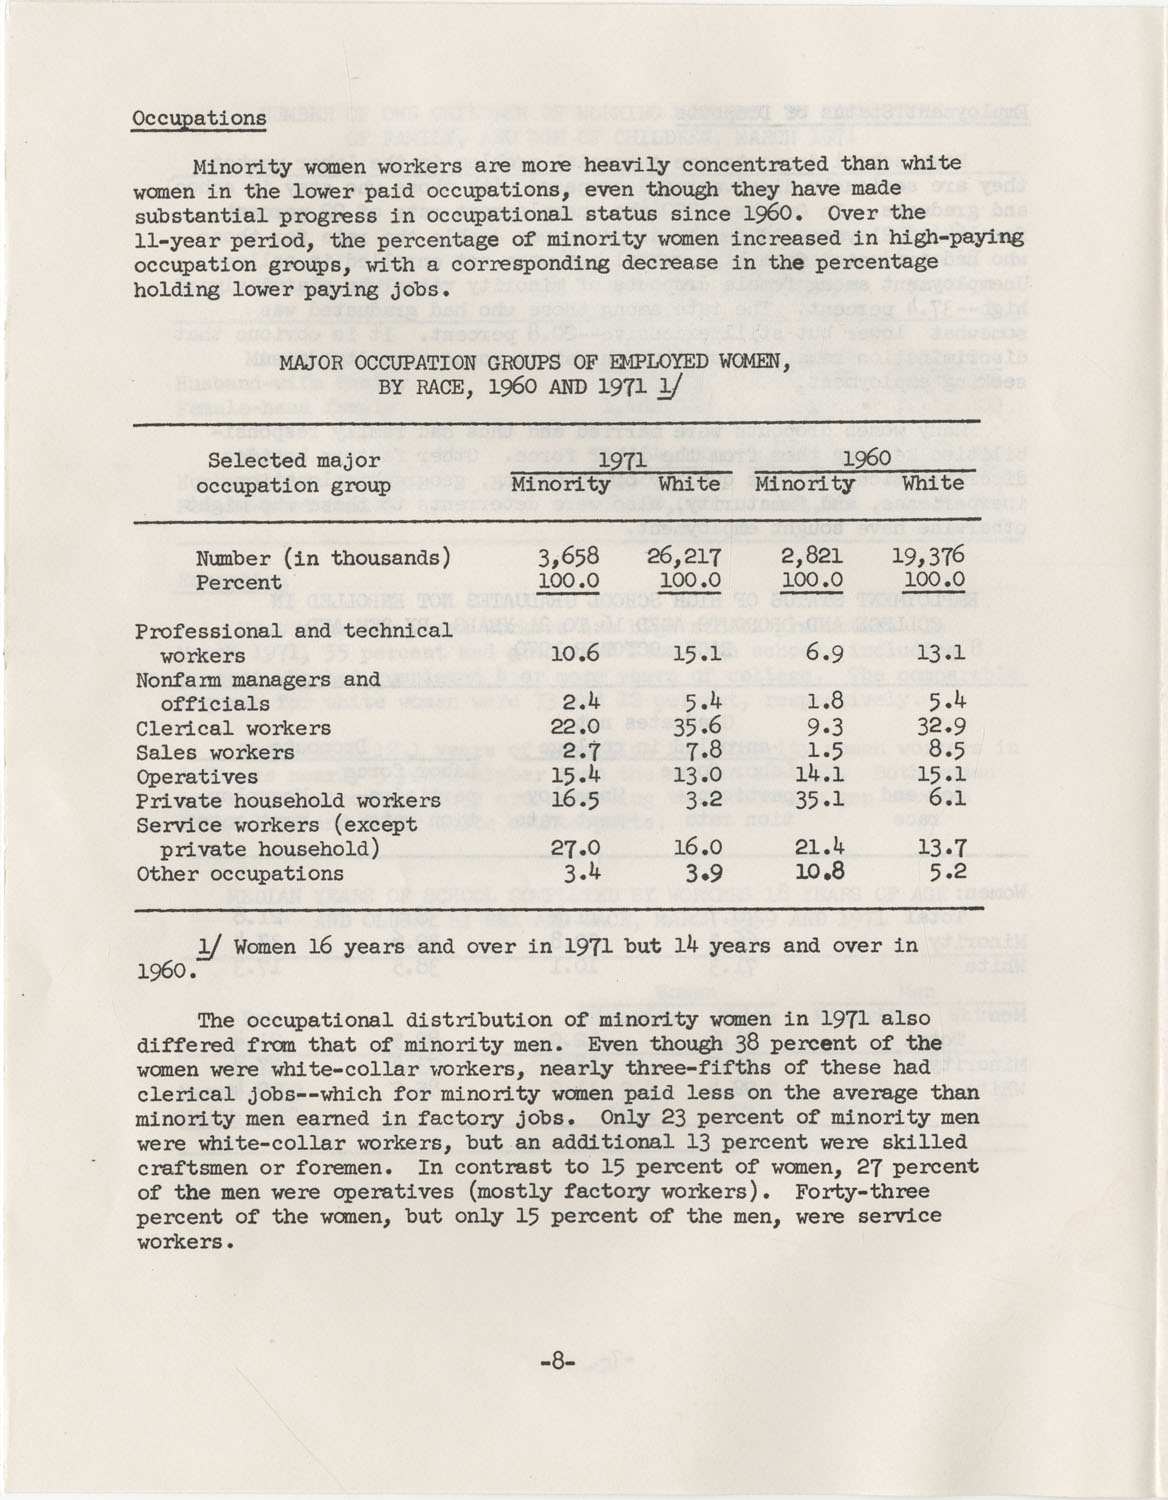 Facts on Women Workers of Minority Races, U.S. Department of Labor, June 1972, Page 8